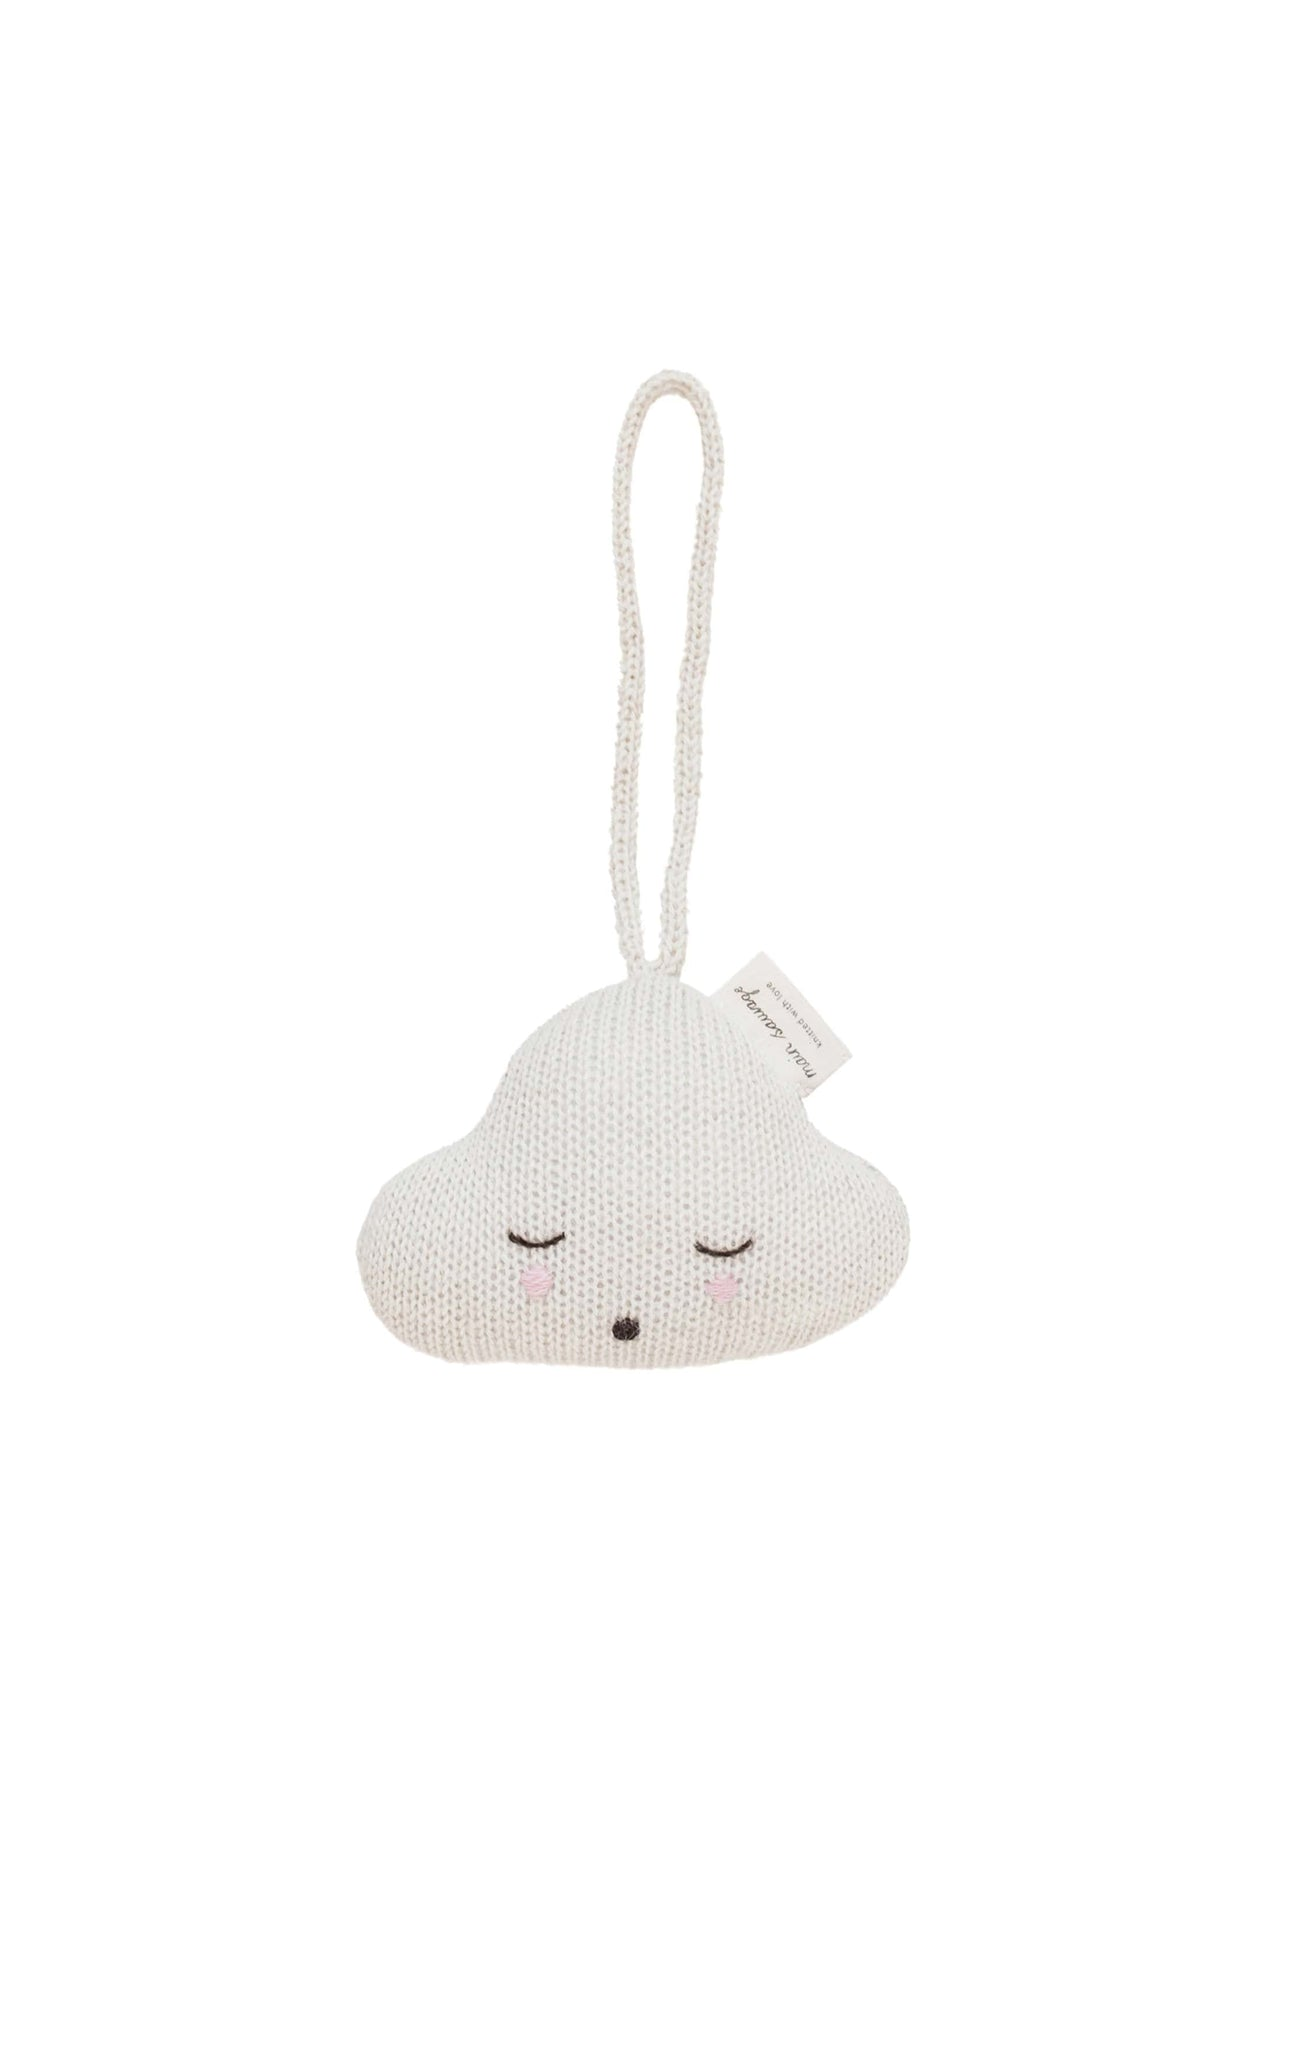 Main Sauvage cloud hanging rattle (PRE-ORDER NOV) - Hello Little Birdie